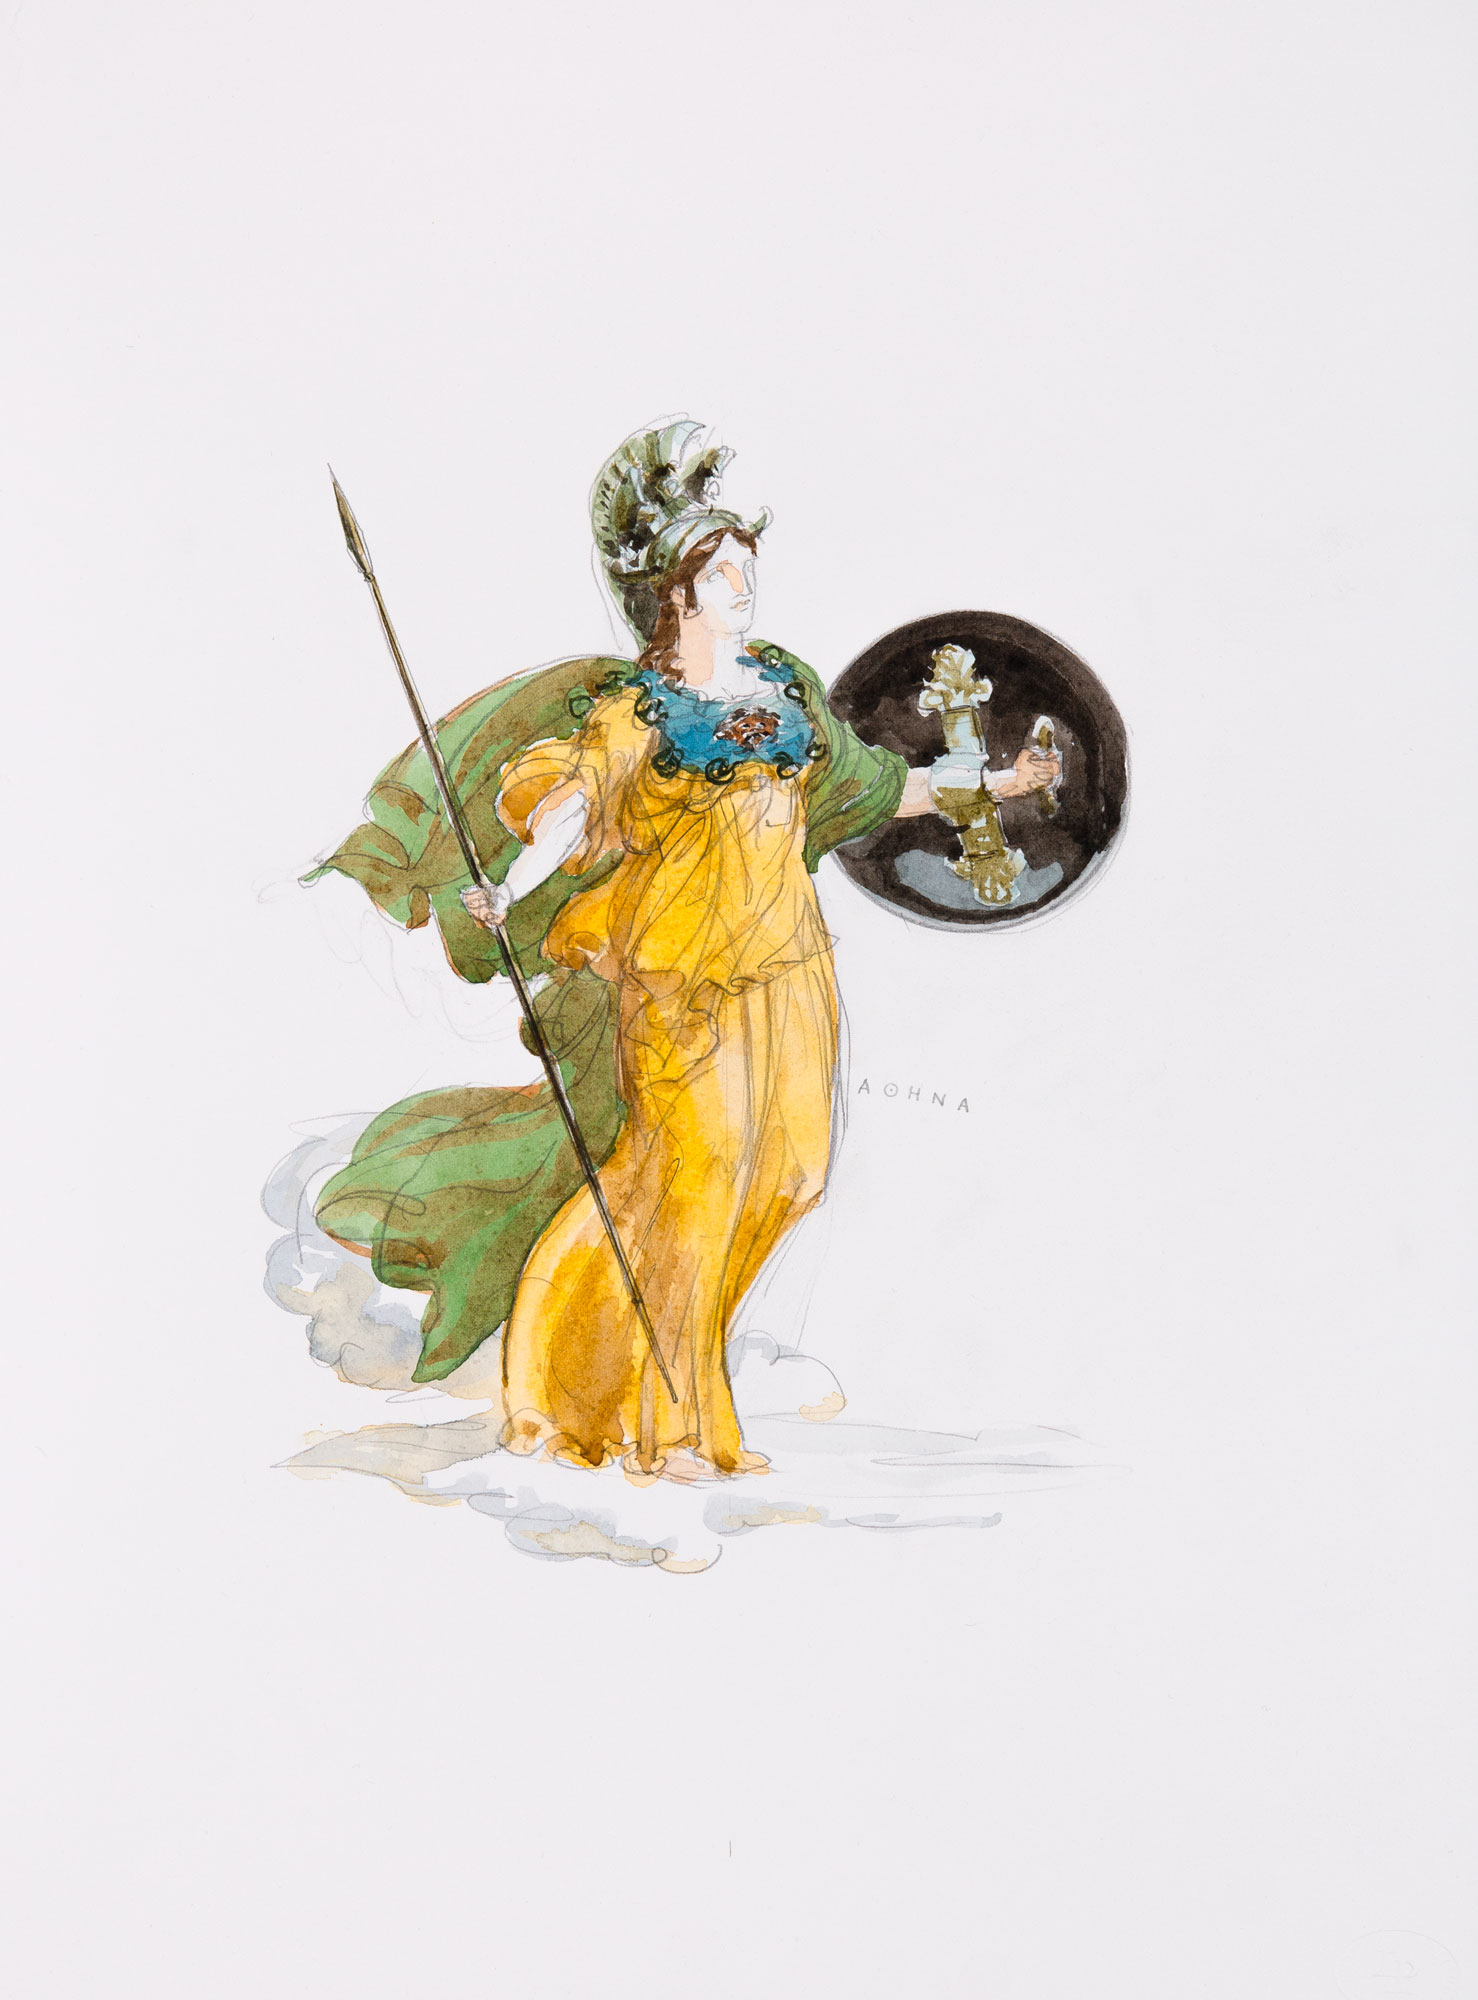 Athena  2018, Watercolor and Pencil on Paper, 15 x 11 inches.  © Leonard Porter MMXVIII